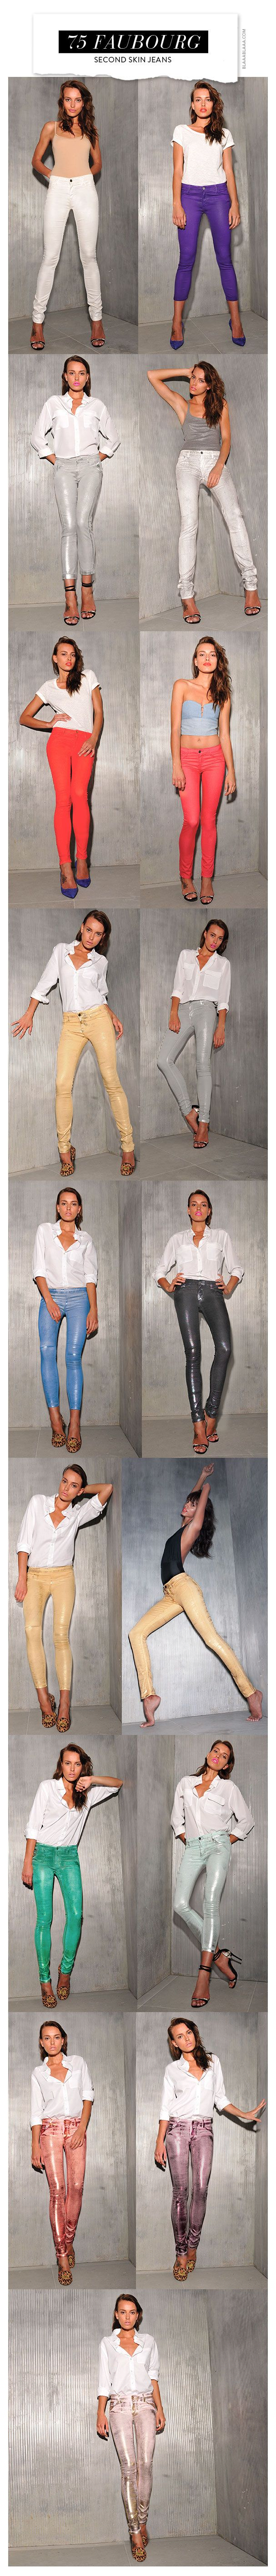 75 Faubourg Second Skin Jeans